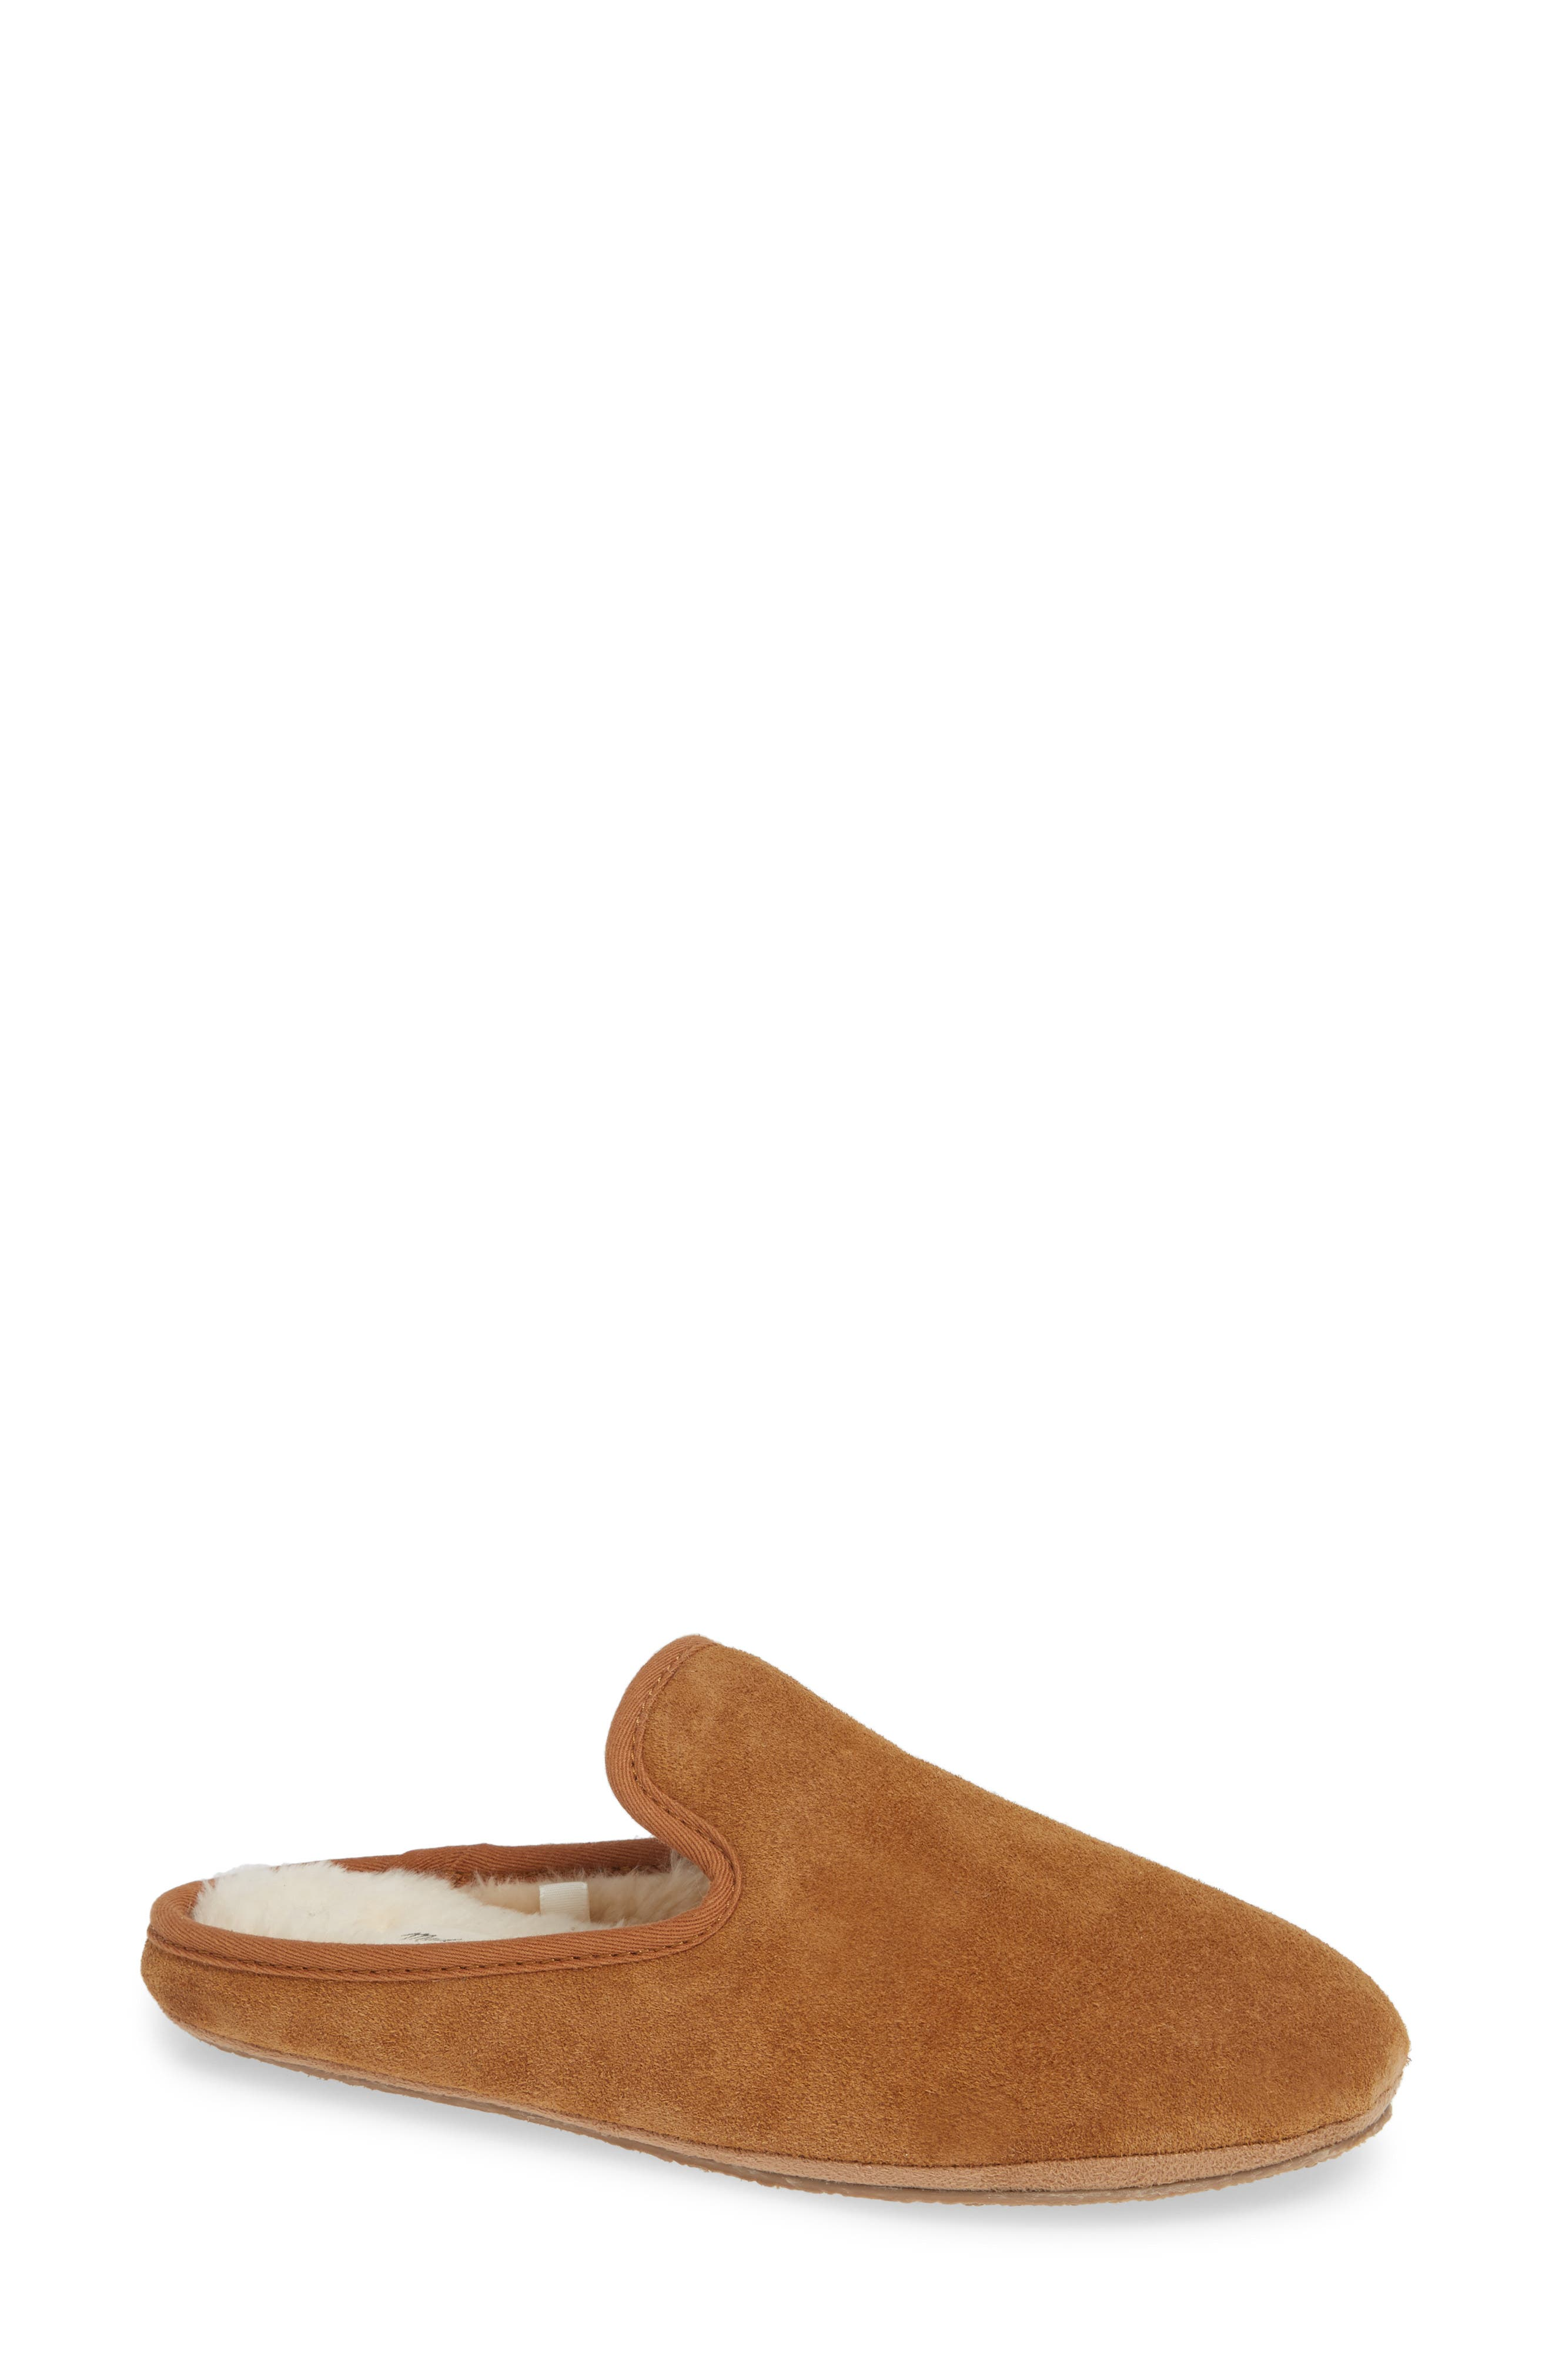 The Loafer Scuff Slipper,                             Main thumbnail 1, color,                             TIMBER BEAM